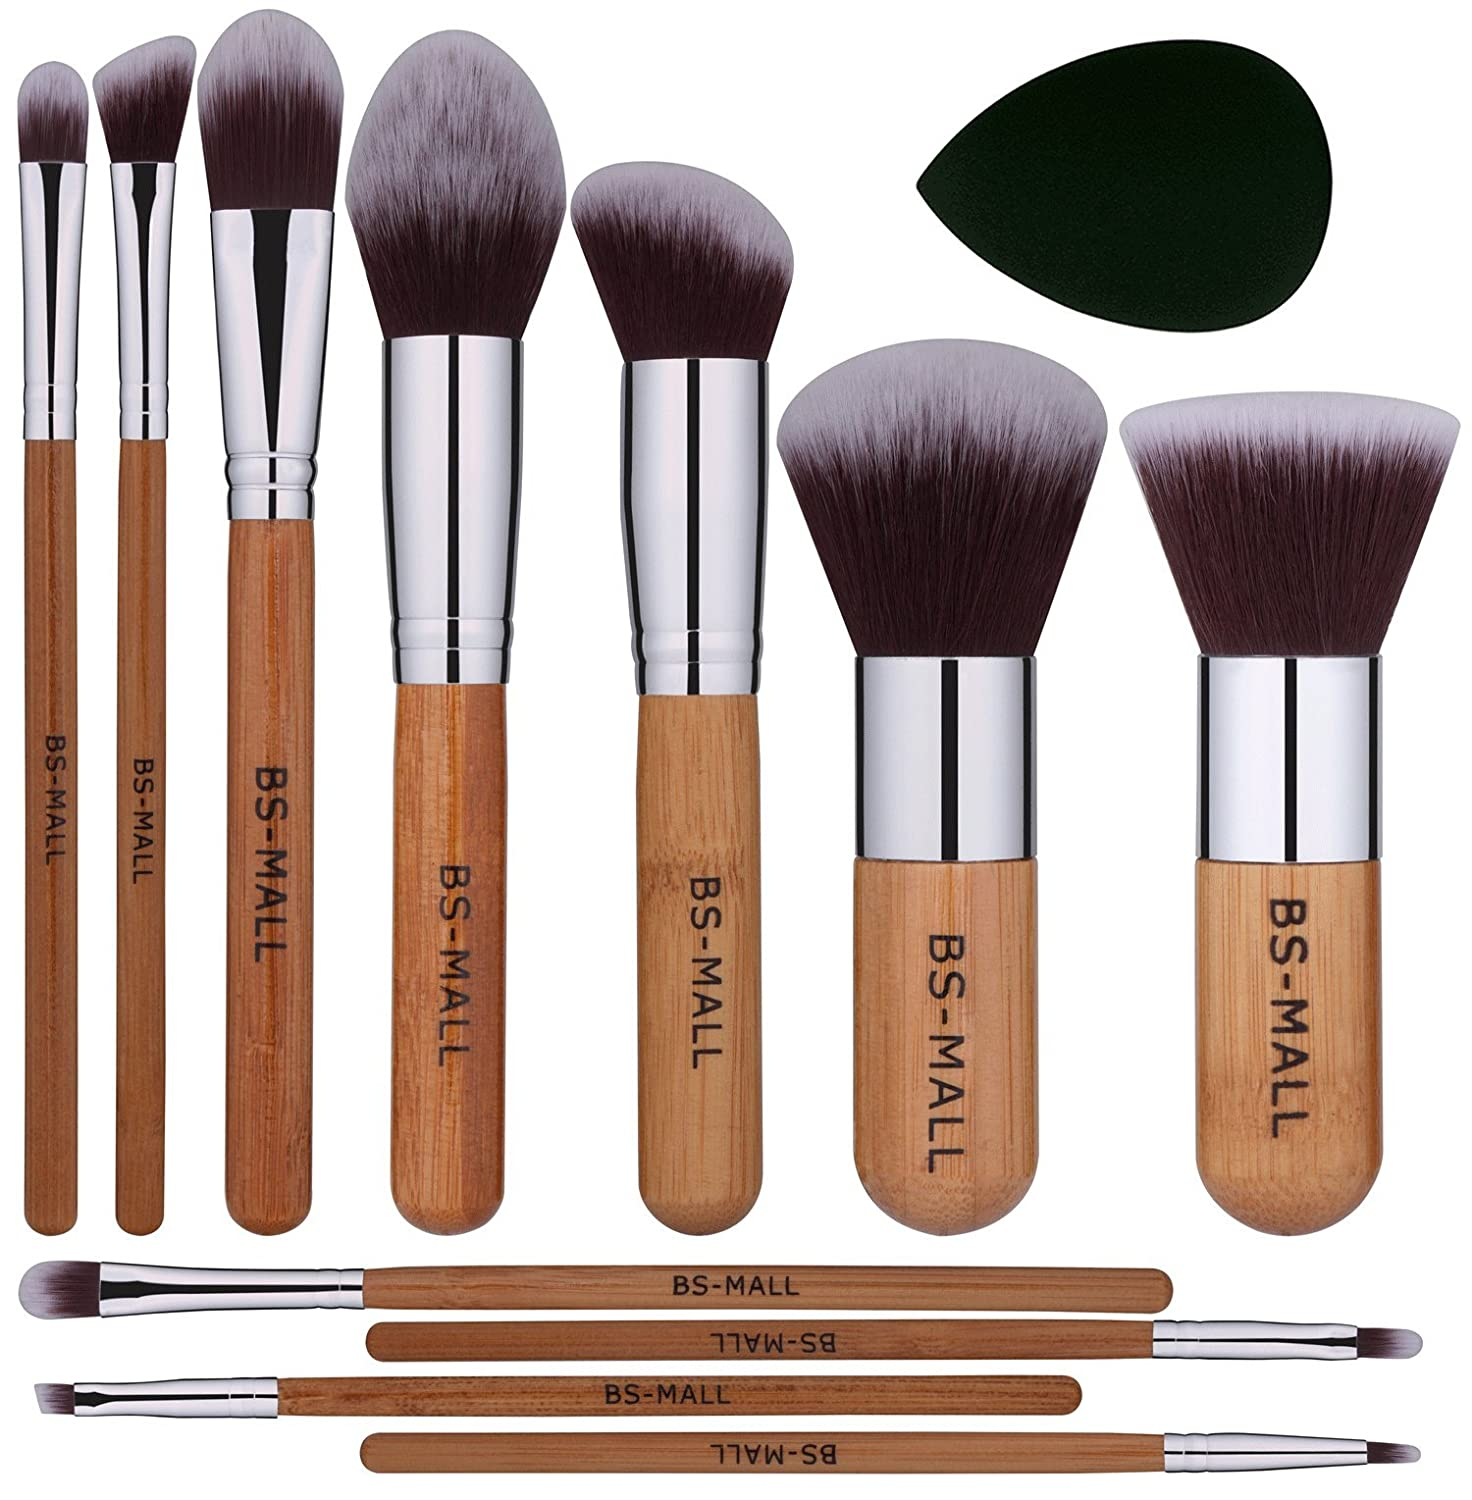 BS-MALL Makeup Brush Set 11Pcs Bamboo Synthetic Kabuki Brush Set Foundation Powder Blending Concealer Eye shadows Blush Cosmetics Brushes with Organizer Bag & Makeup Sponge: Beauty